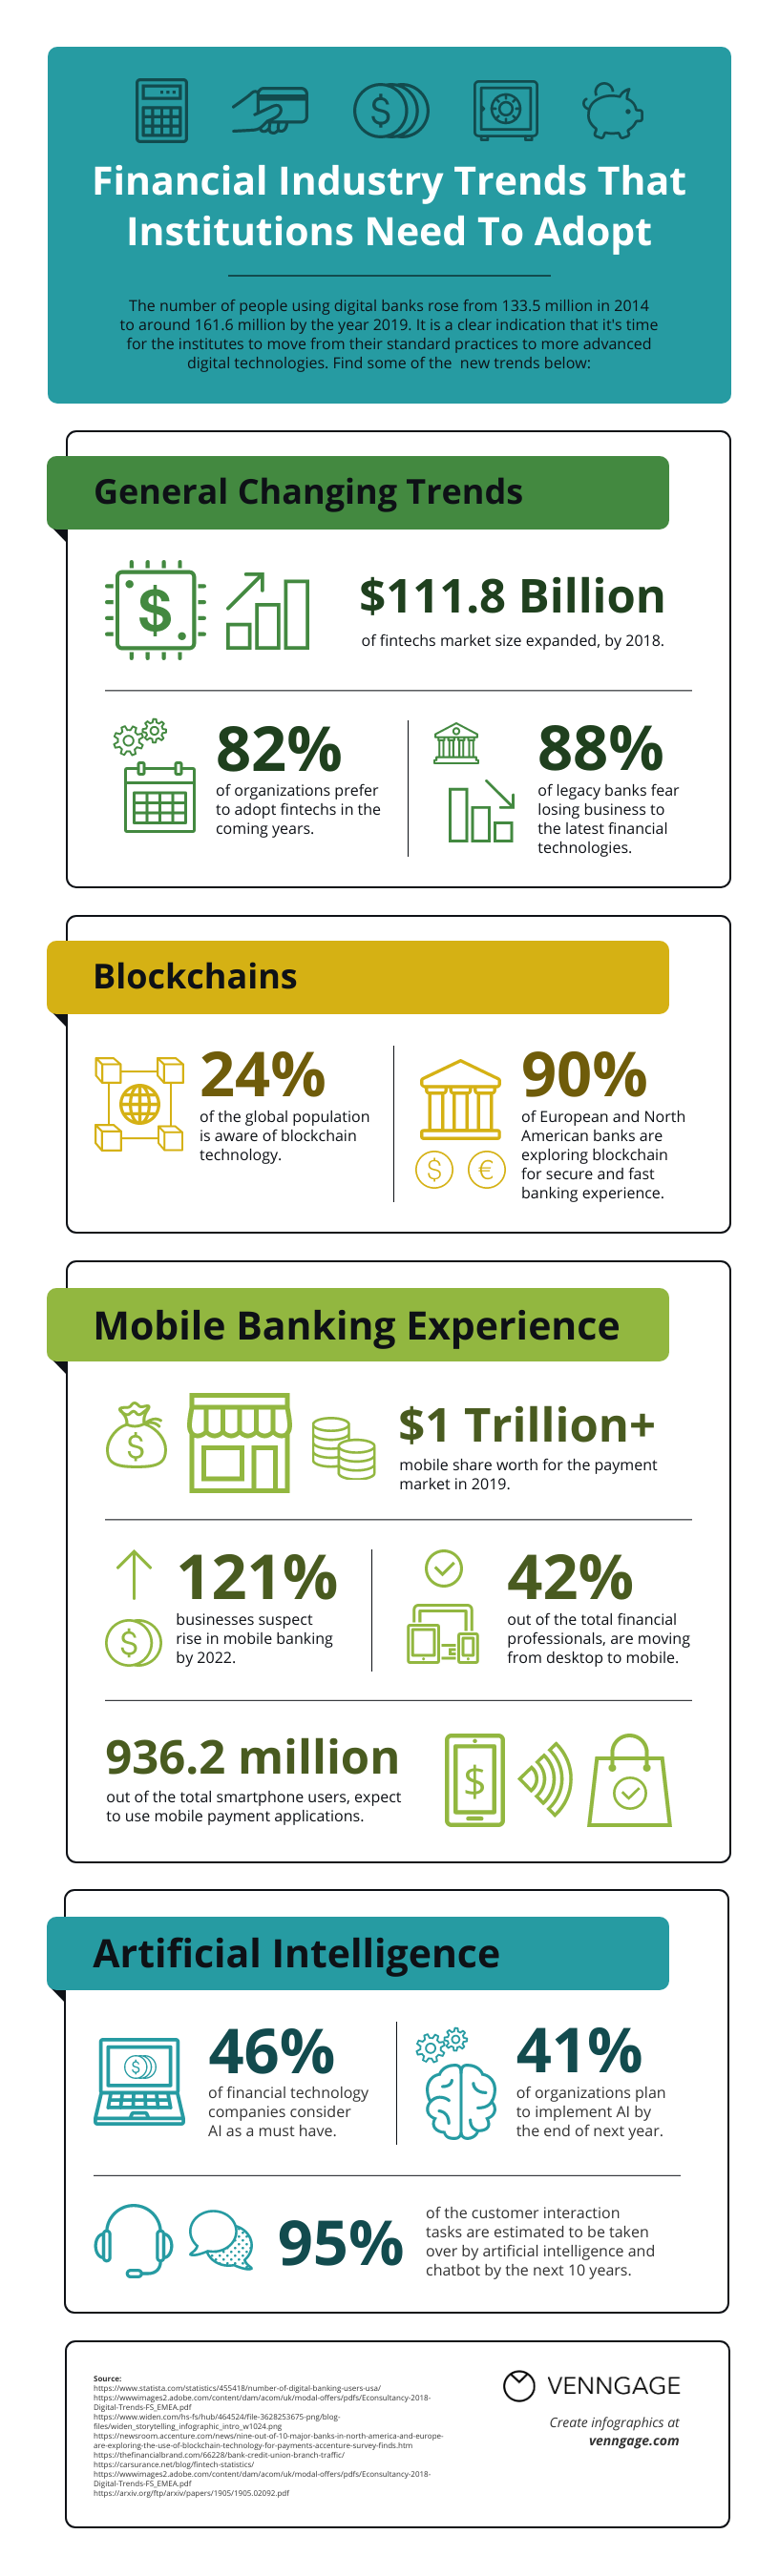 Financial Industry Trends Statistical Infographic Template